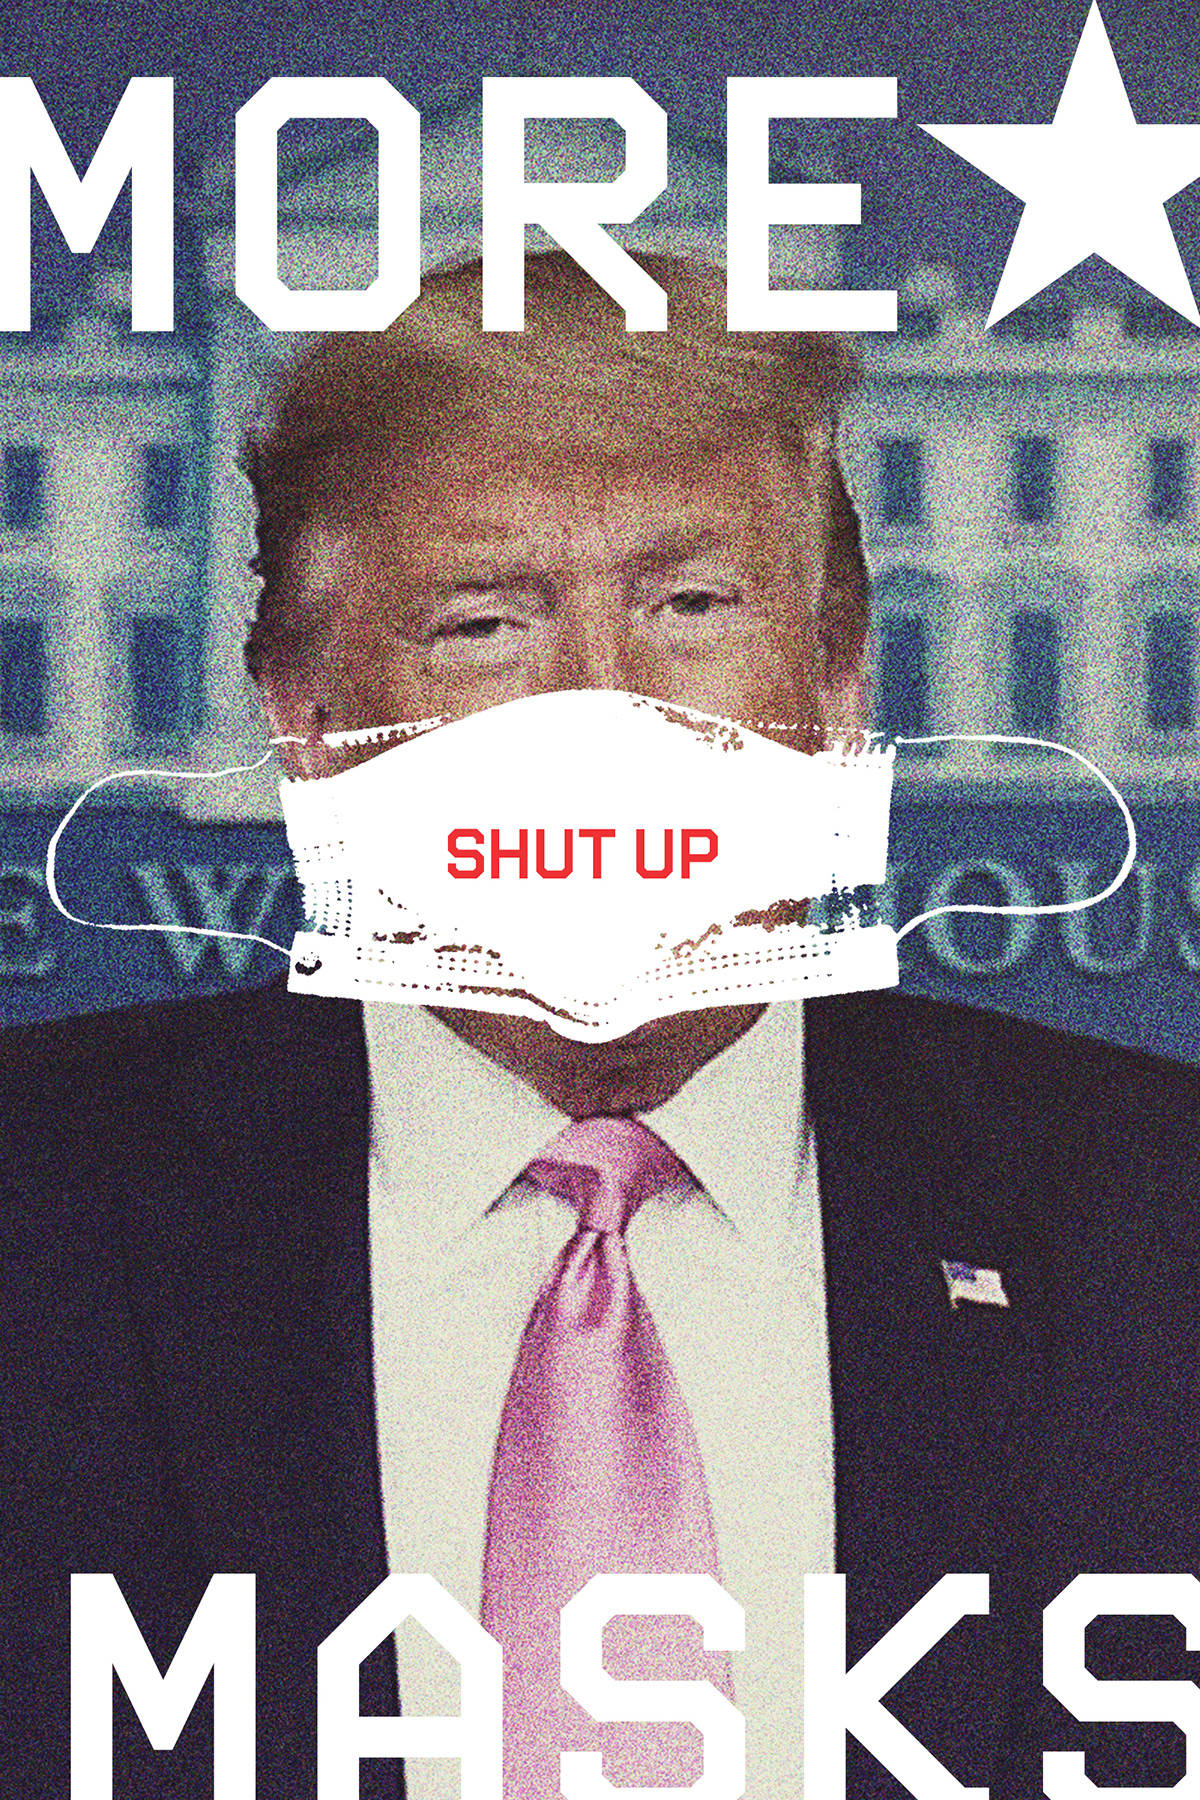 Grainy photo of President Trump with a white mask over his mouth that reads 'SHUT UP' next to words MORE MASKS